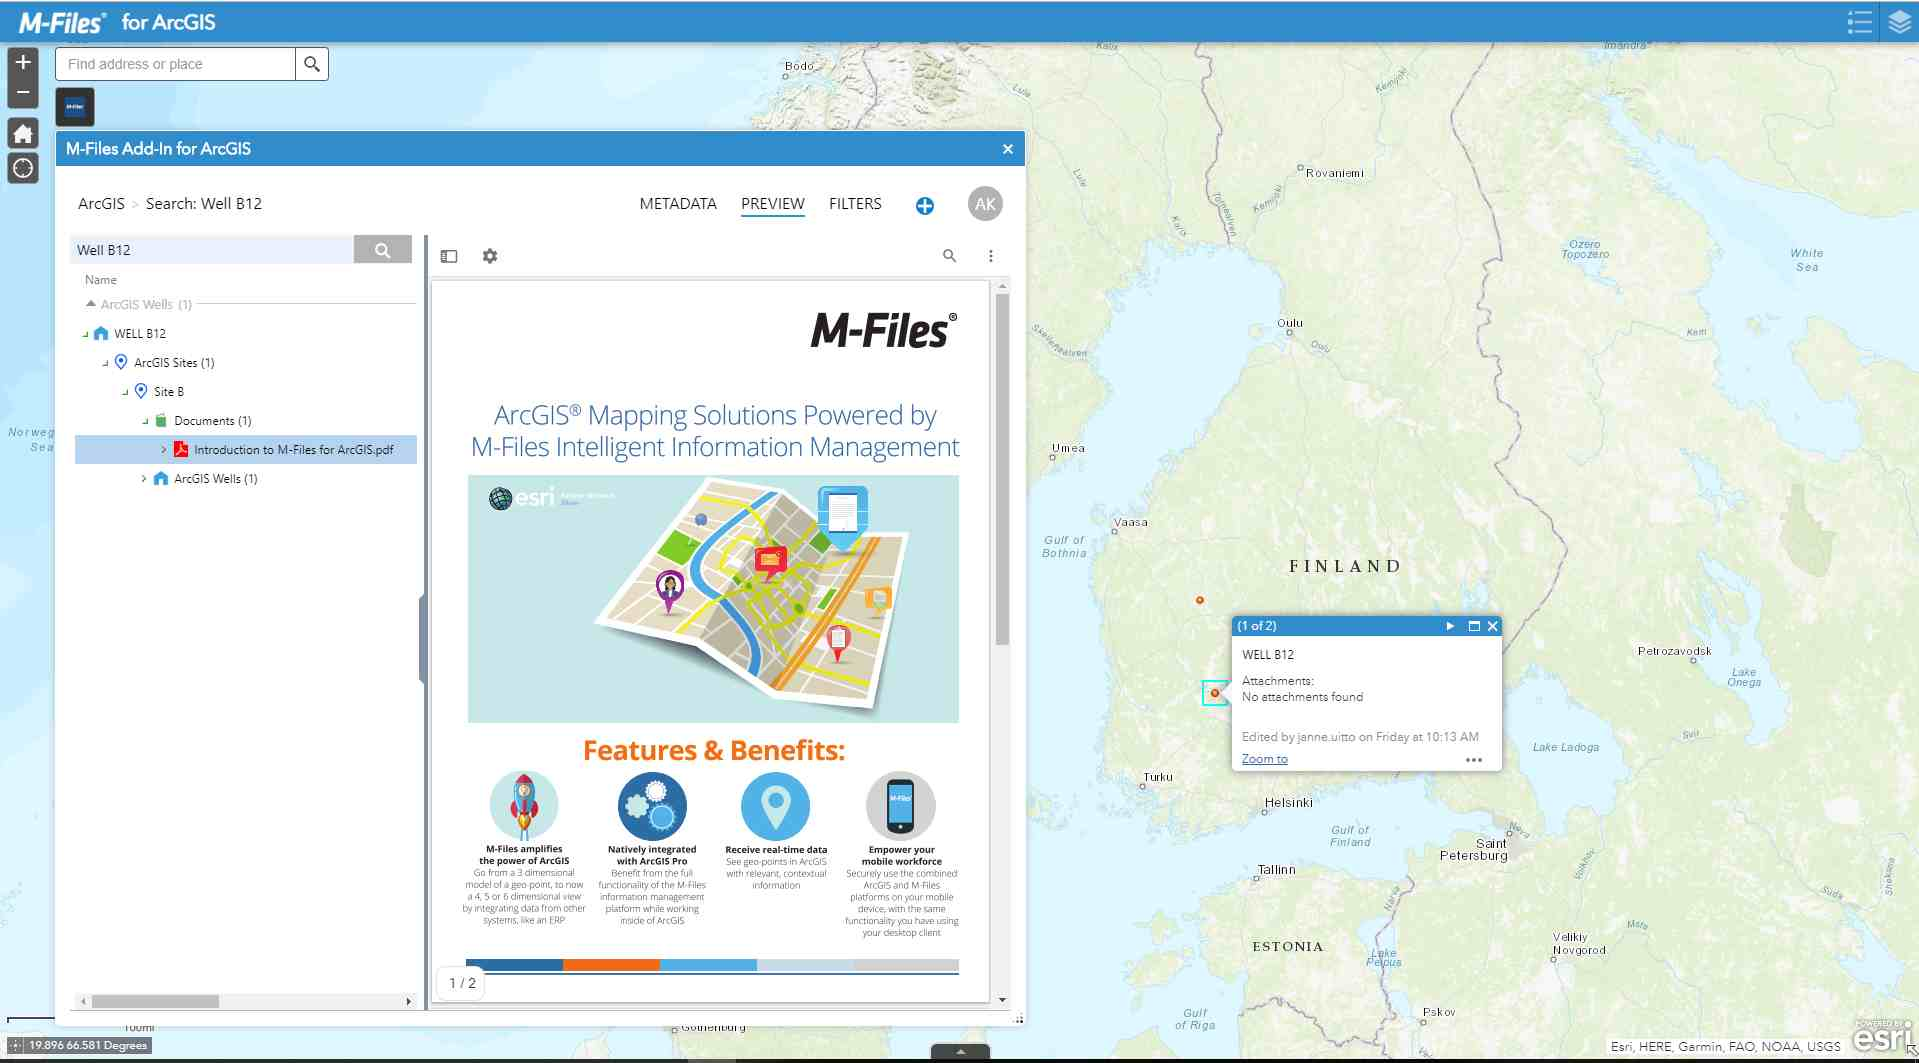 M-Files for ArcGIS